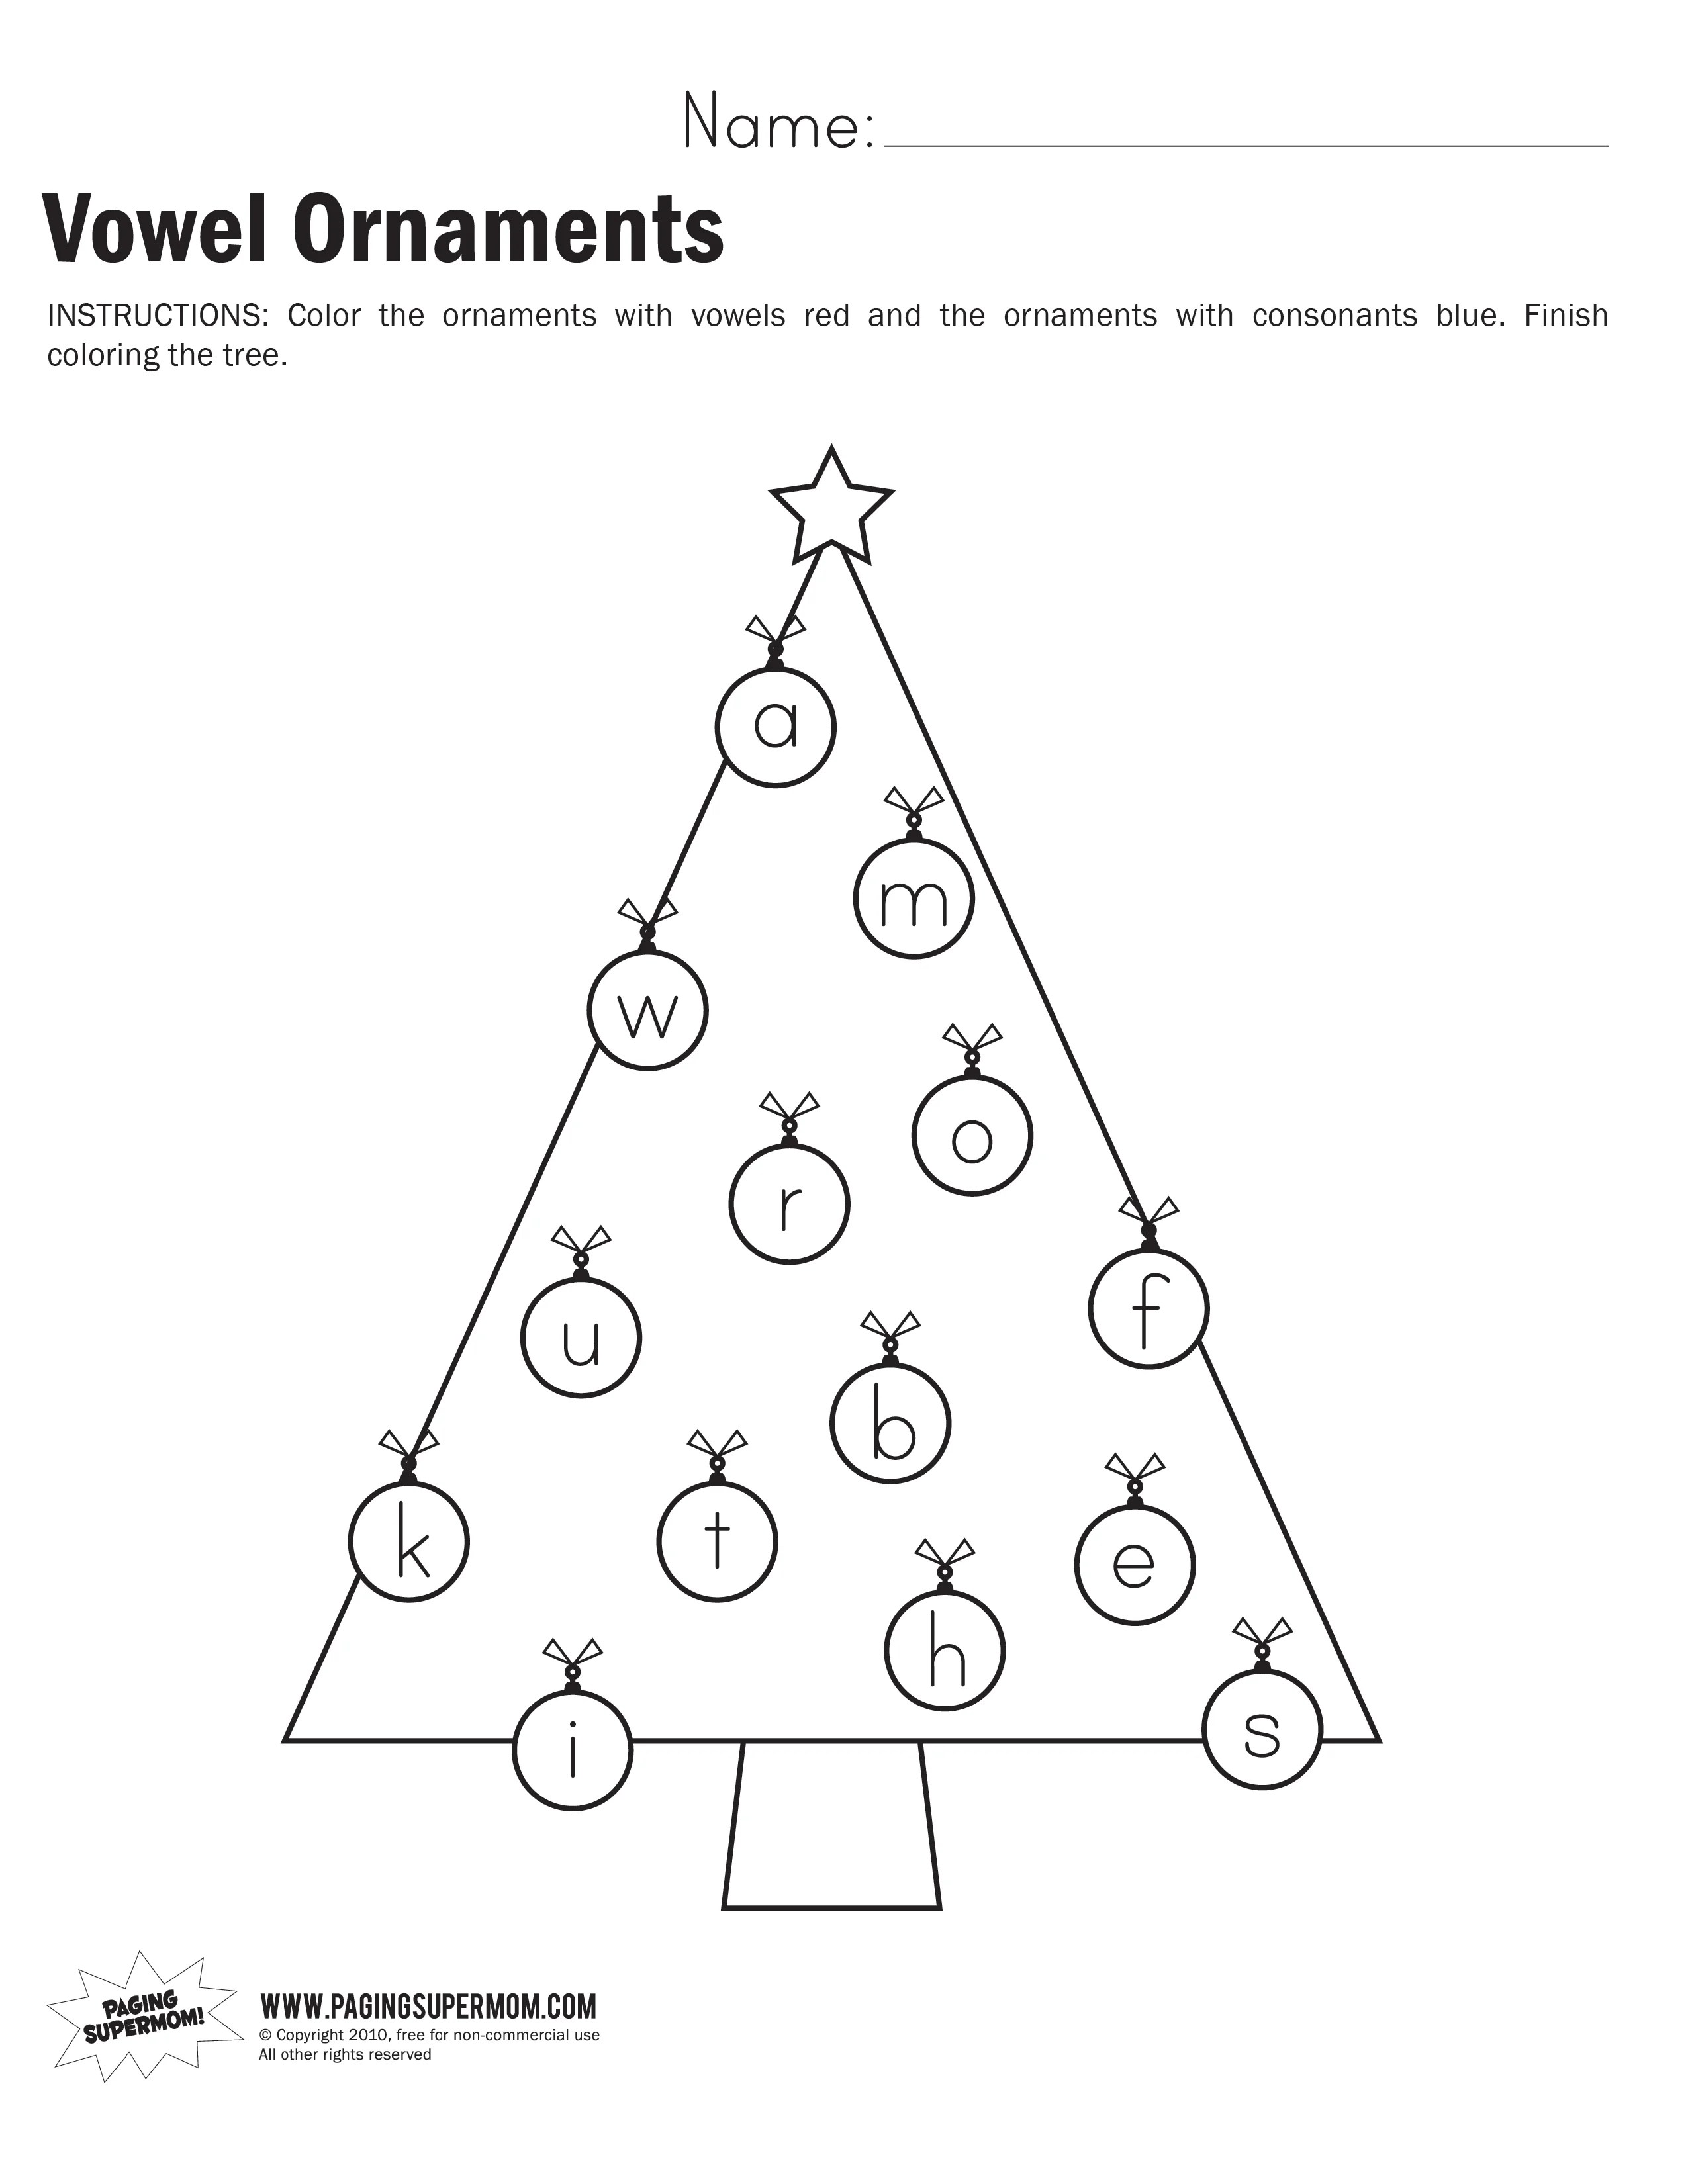 Vowel Ornaments Worksheet